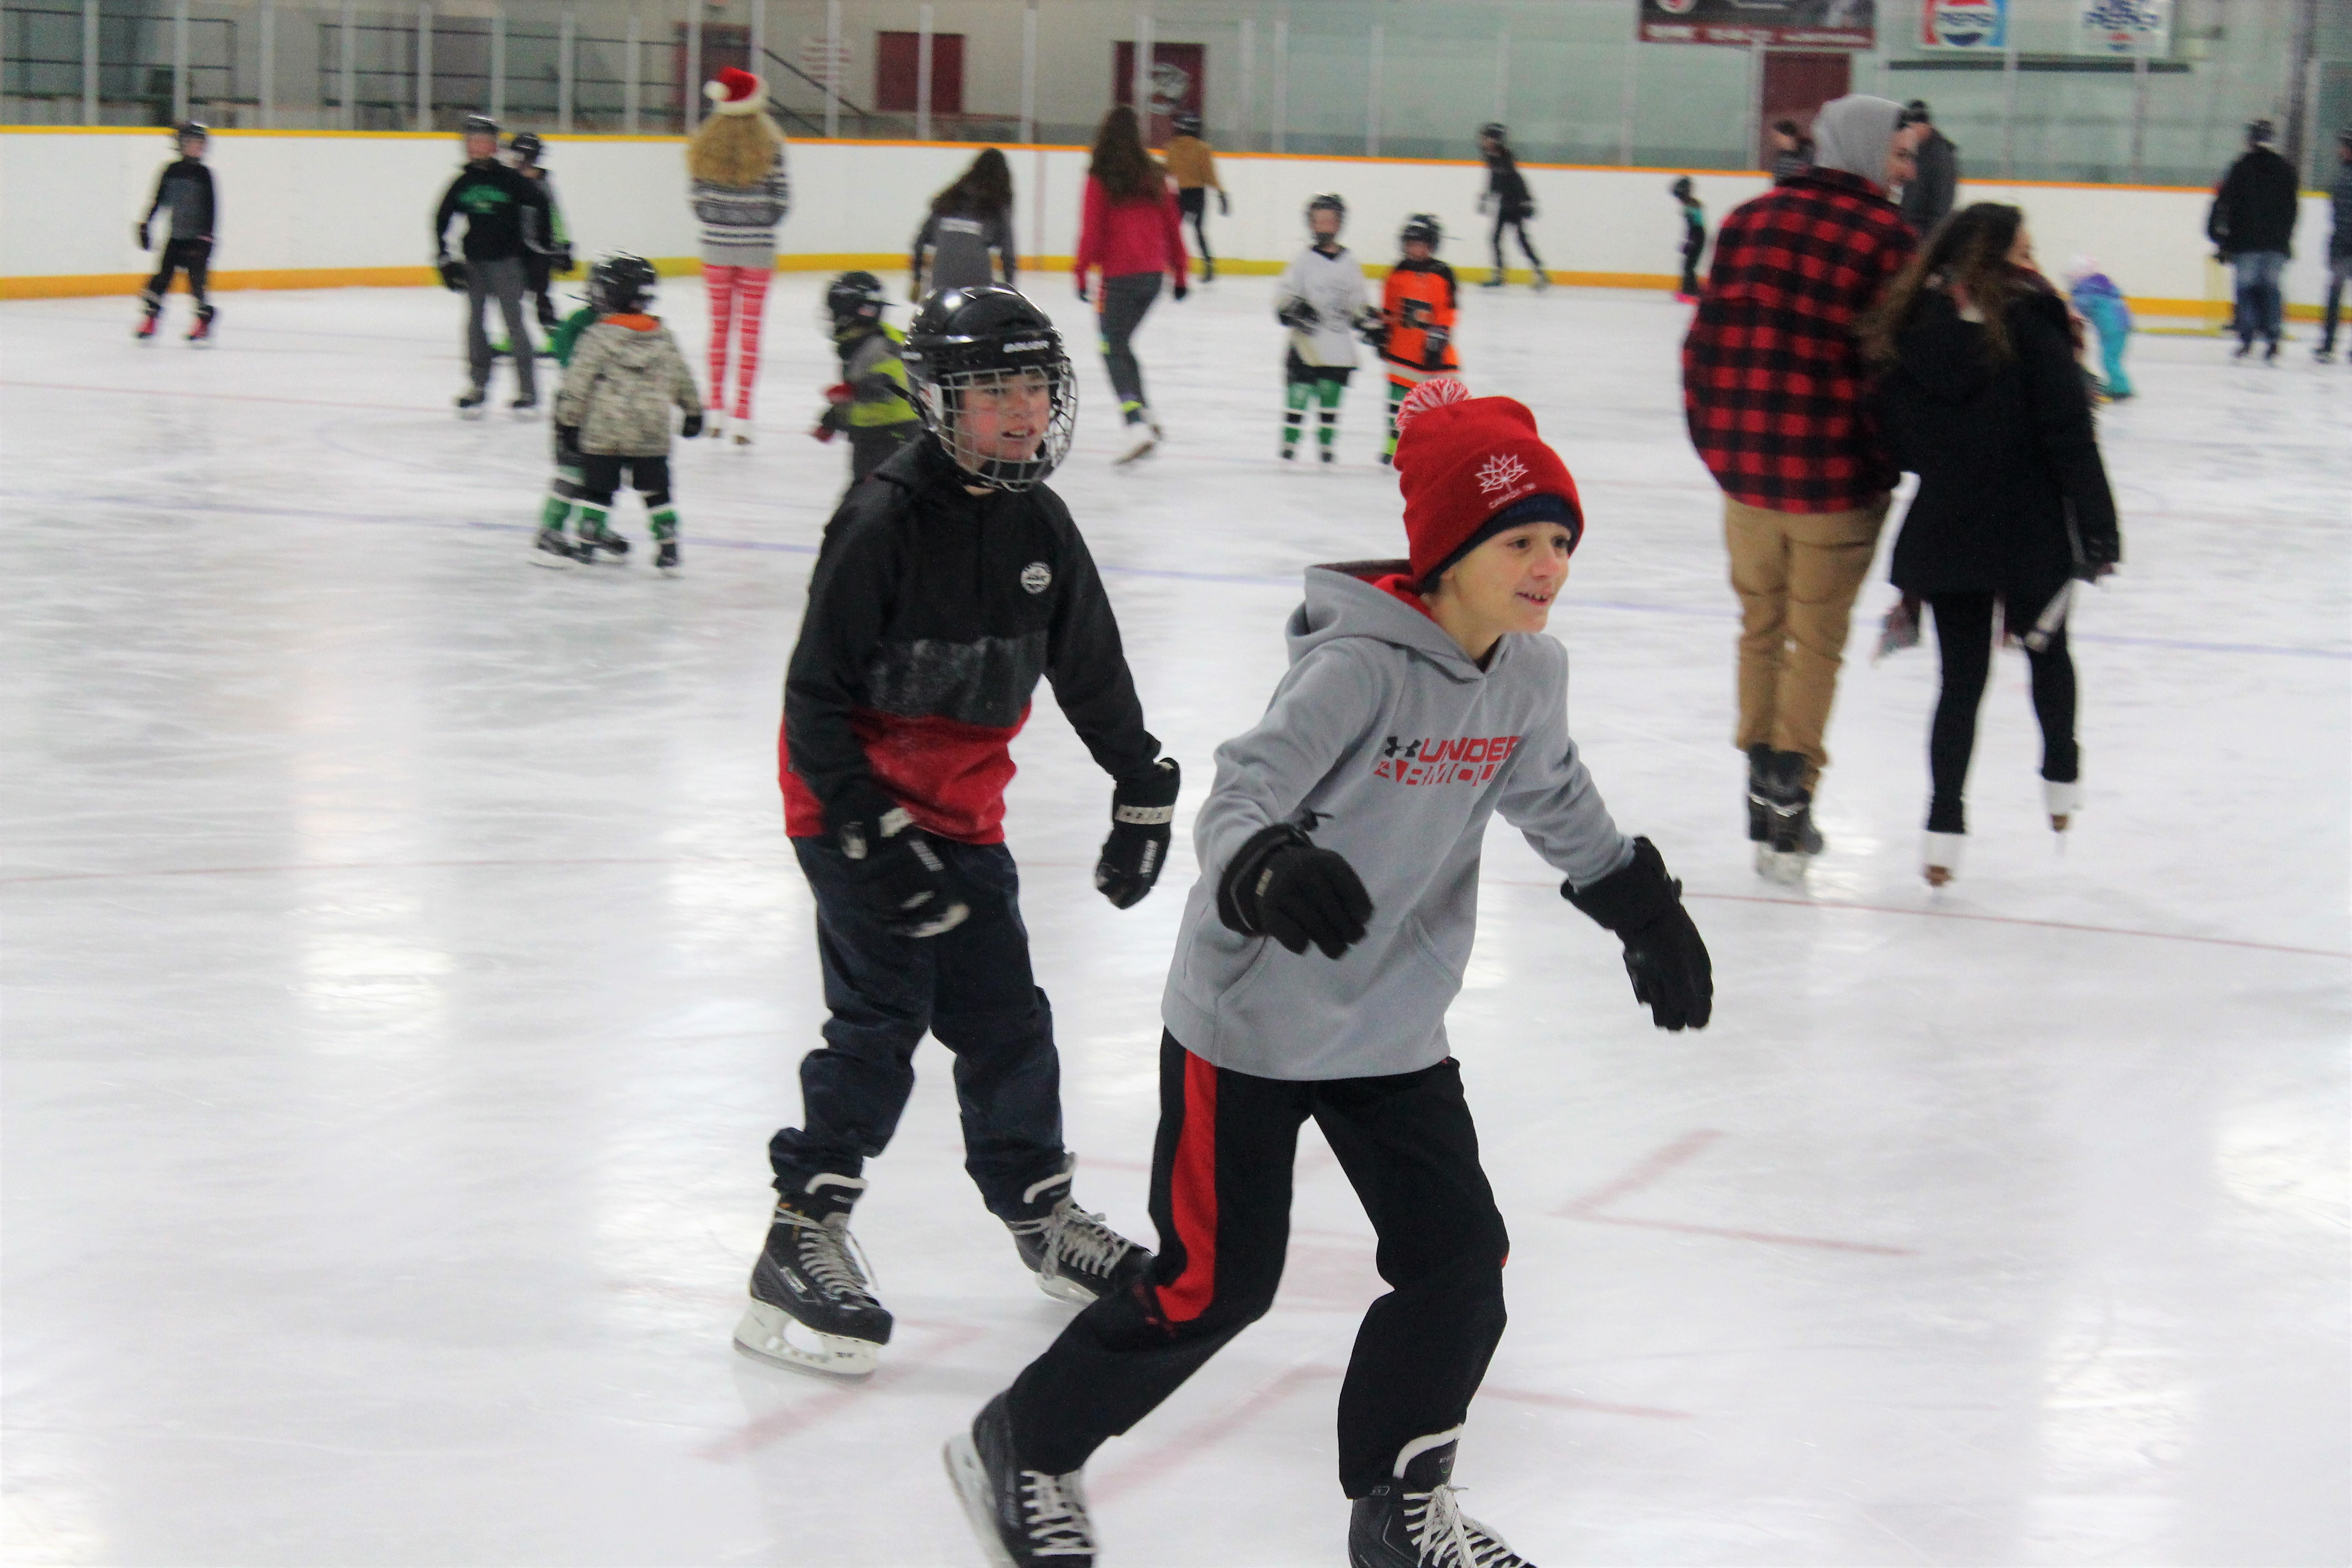 Free public skating returns to Brock over the holidays